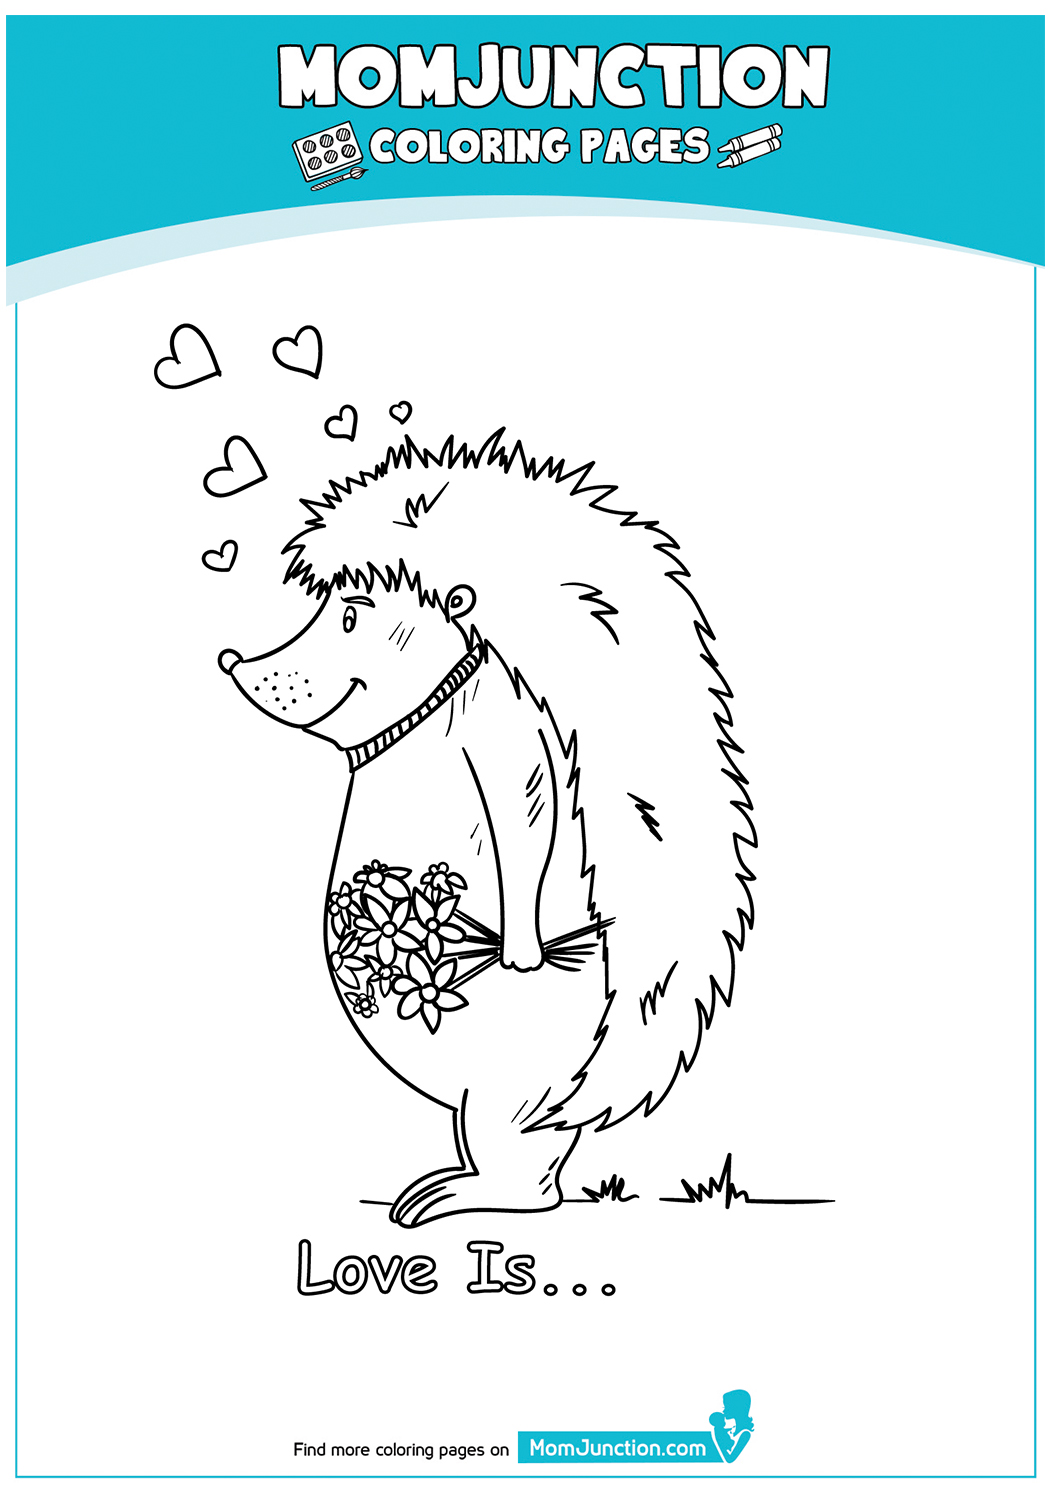 Hedgehog-With-Flowers-18